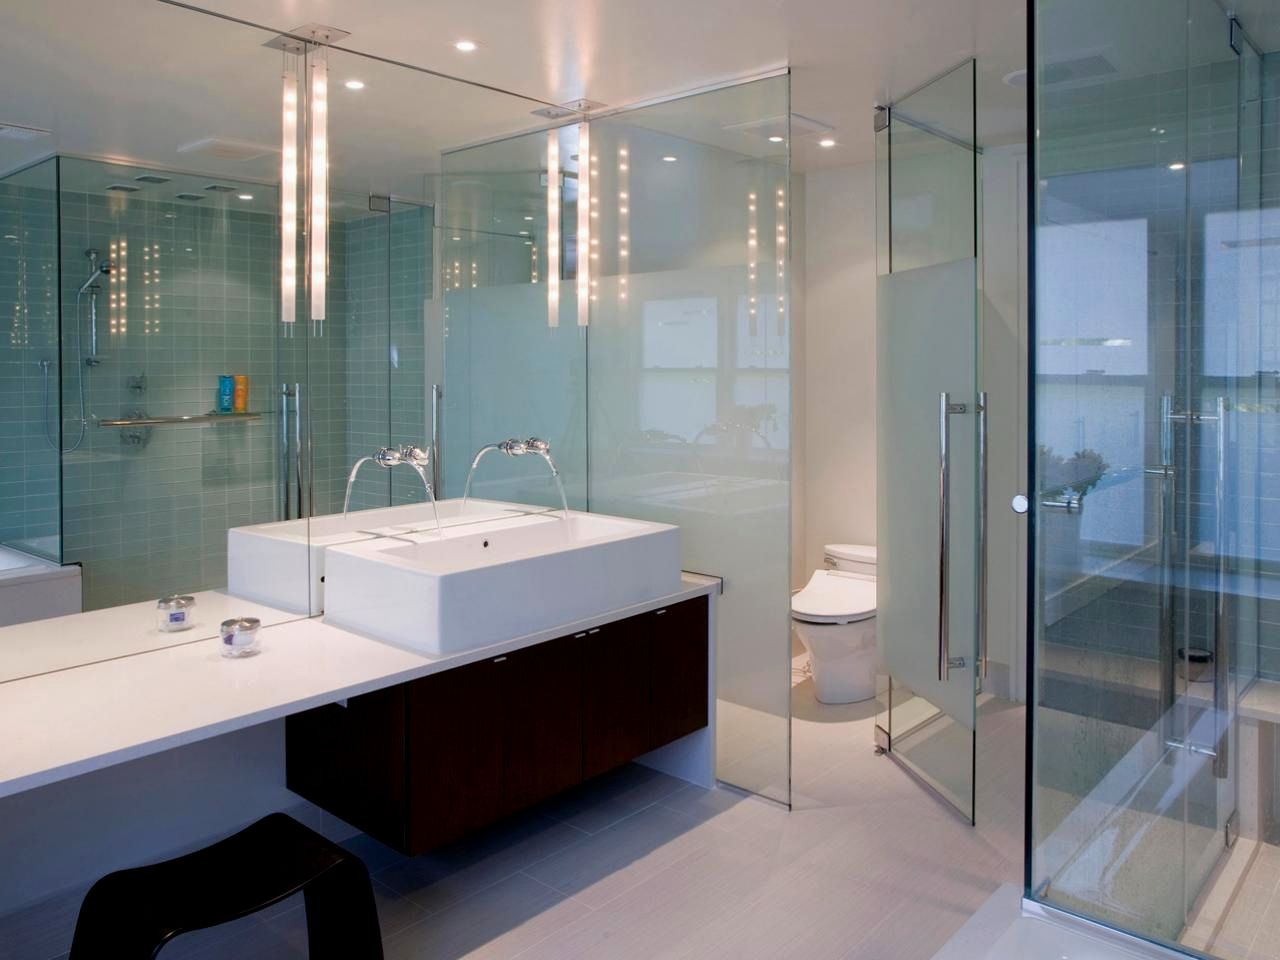 top jack and jill bathroom inspiration-Amazing Jack and Jill Bathroom Online